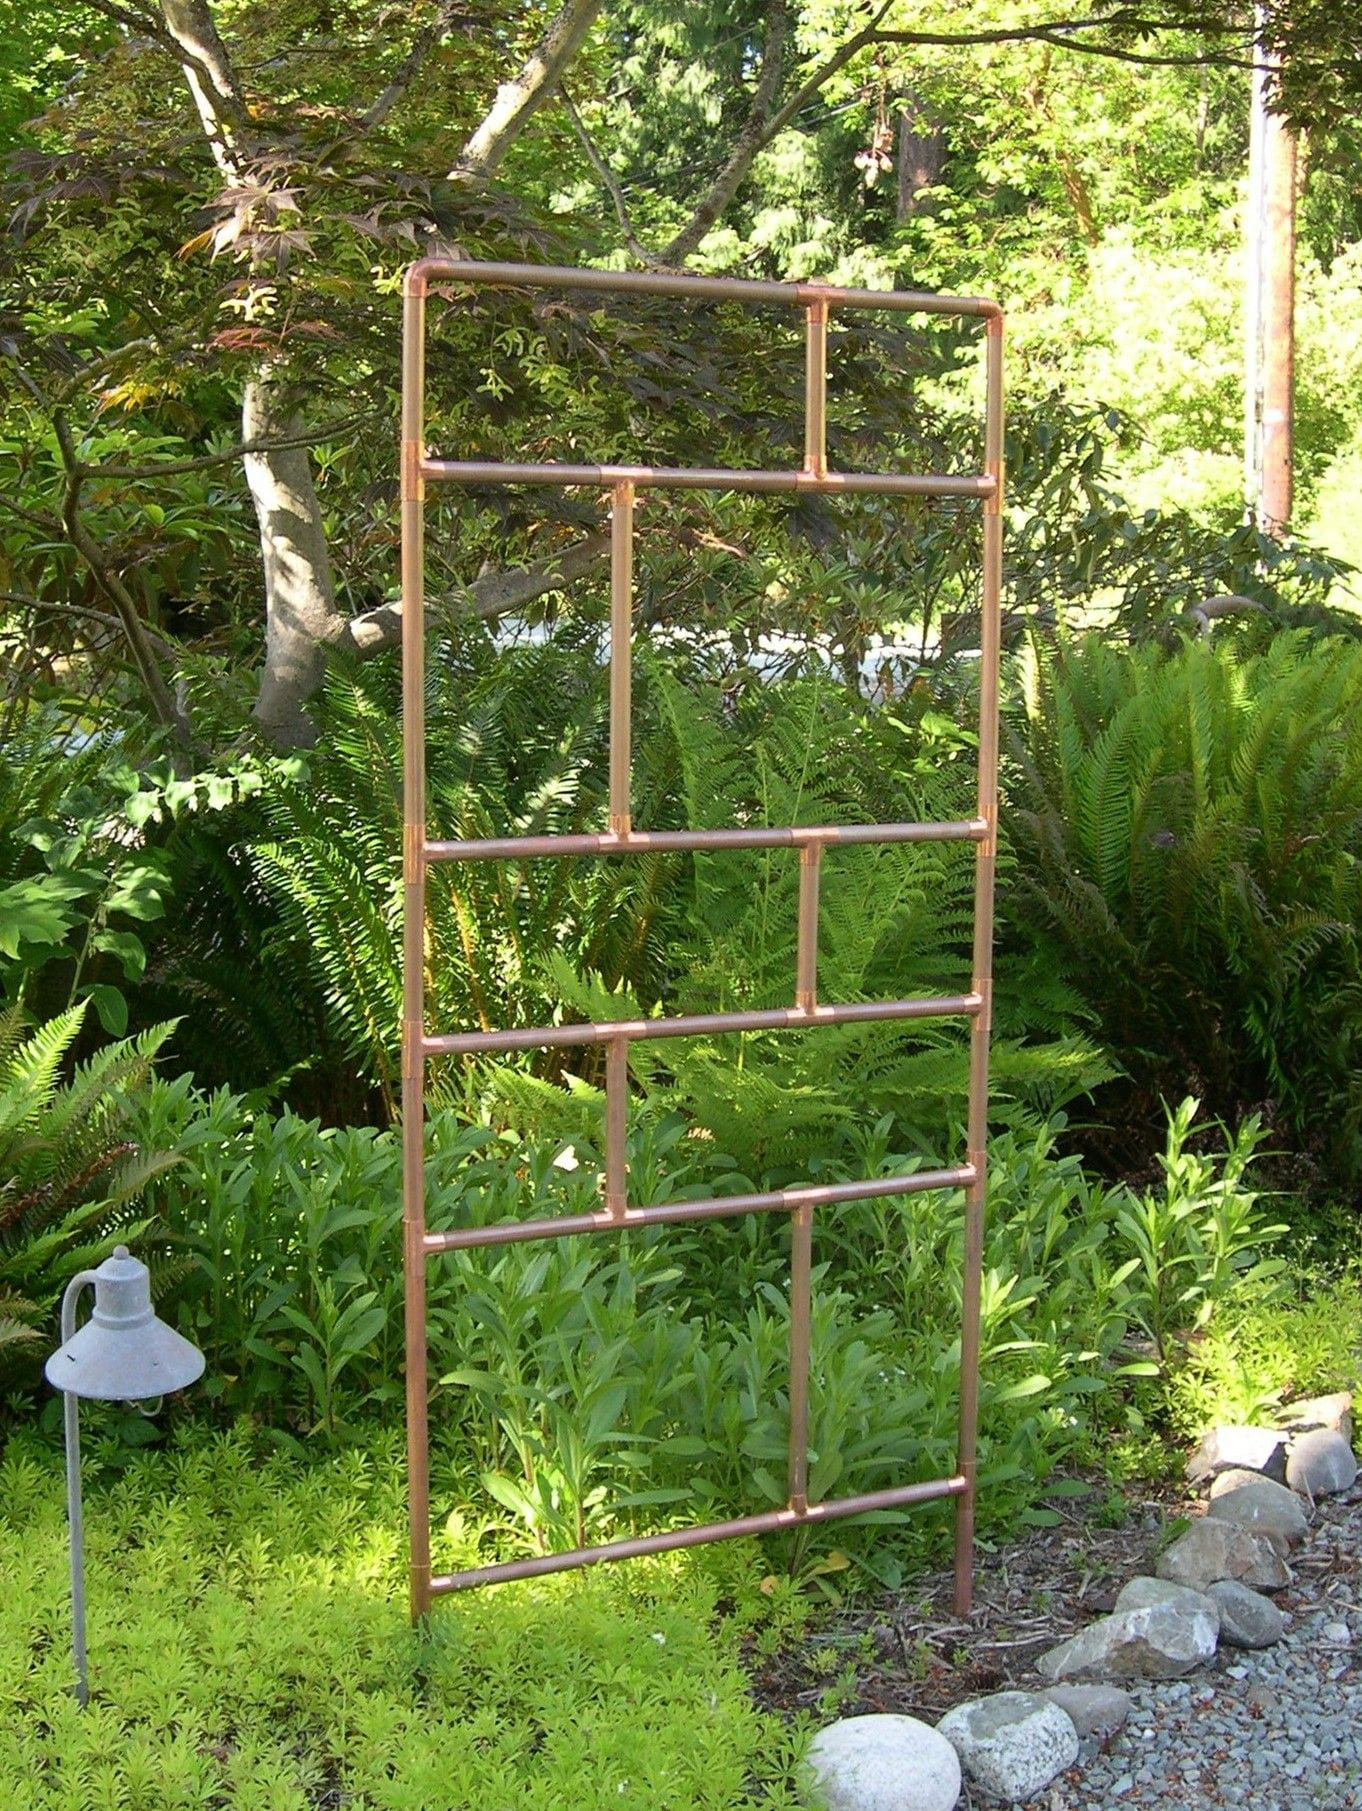 Simphome.garden trellis ideas this one is 5 feet tall 3 feet wide for 2020 2021 2022